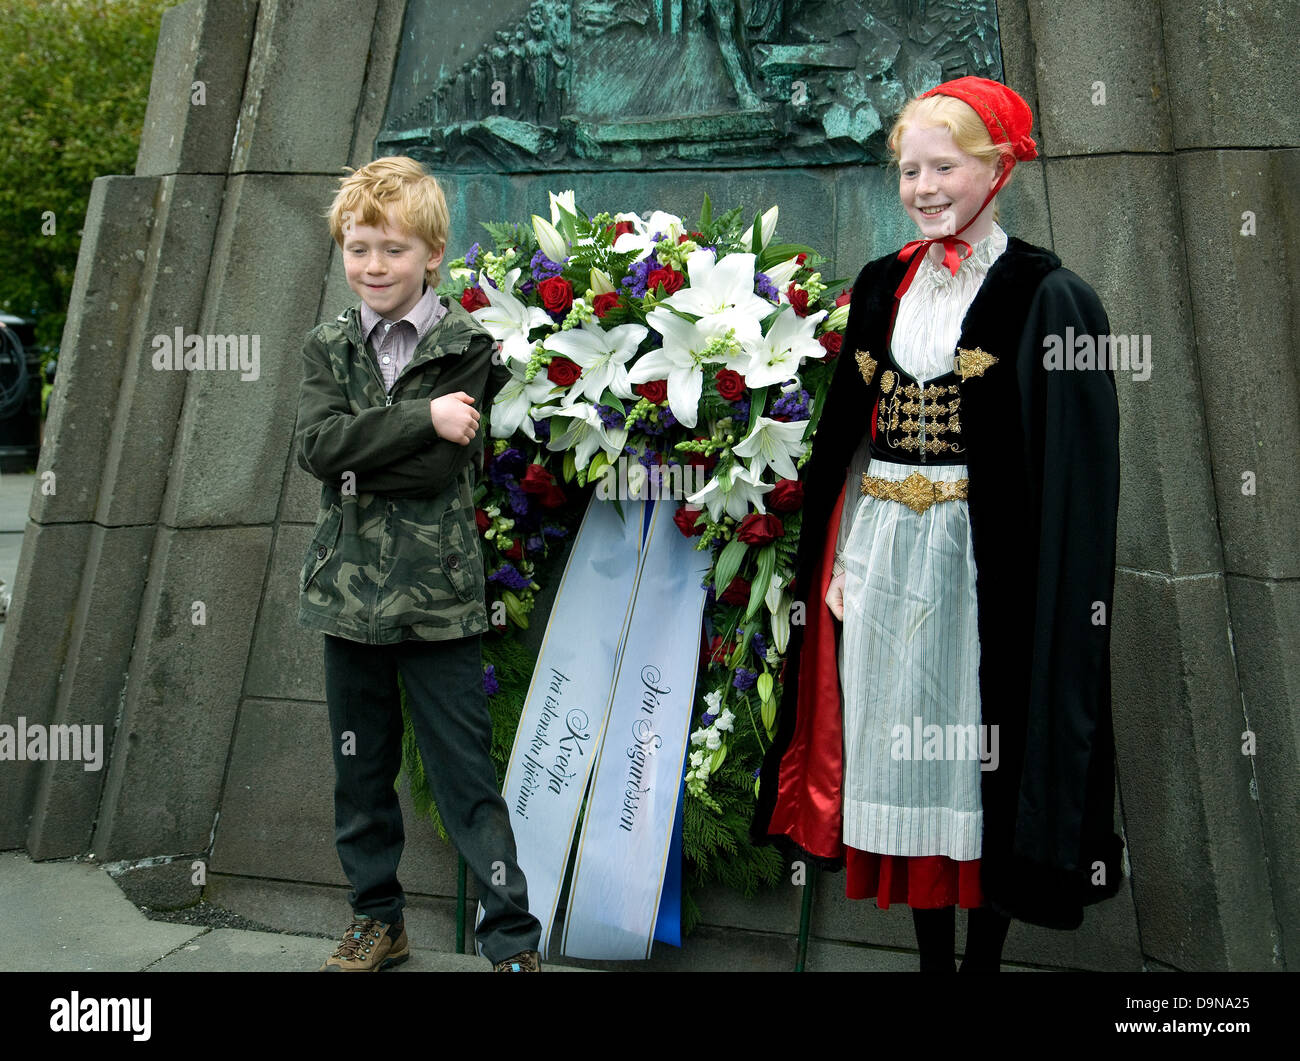 In Reykjavik, on Iceland's independence anniversary, two youngsters pose at a memorial--the girl in national - Stock Image